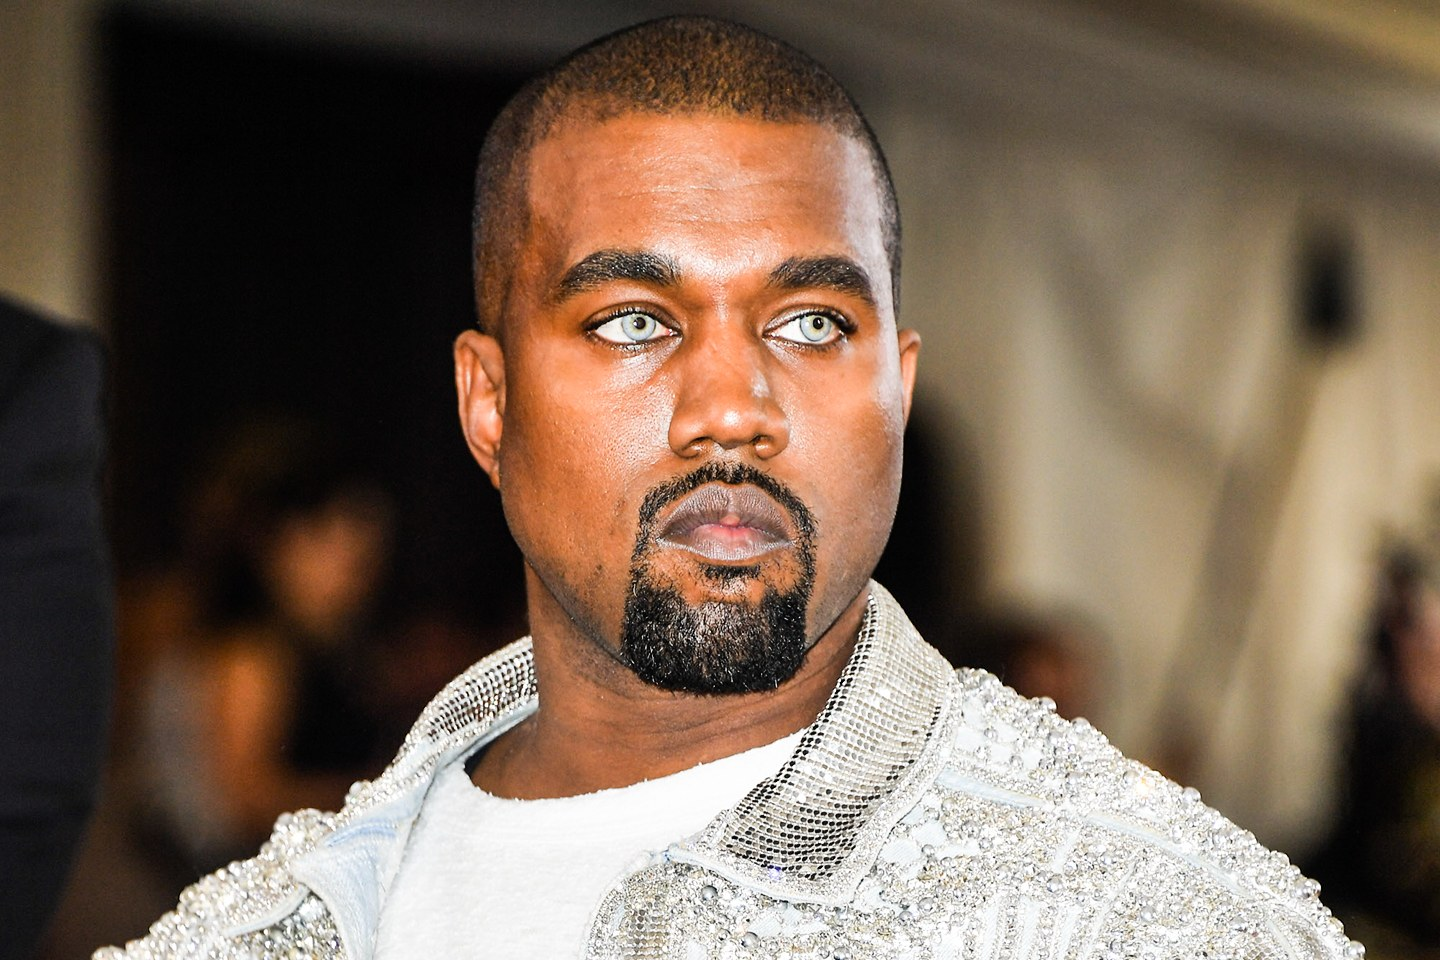 Kanye West believes he's an alien.